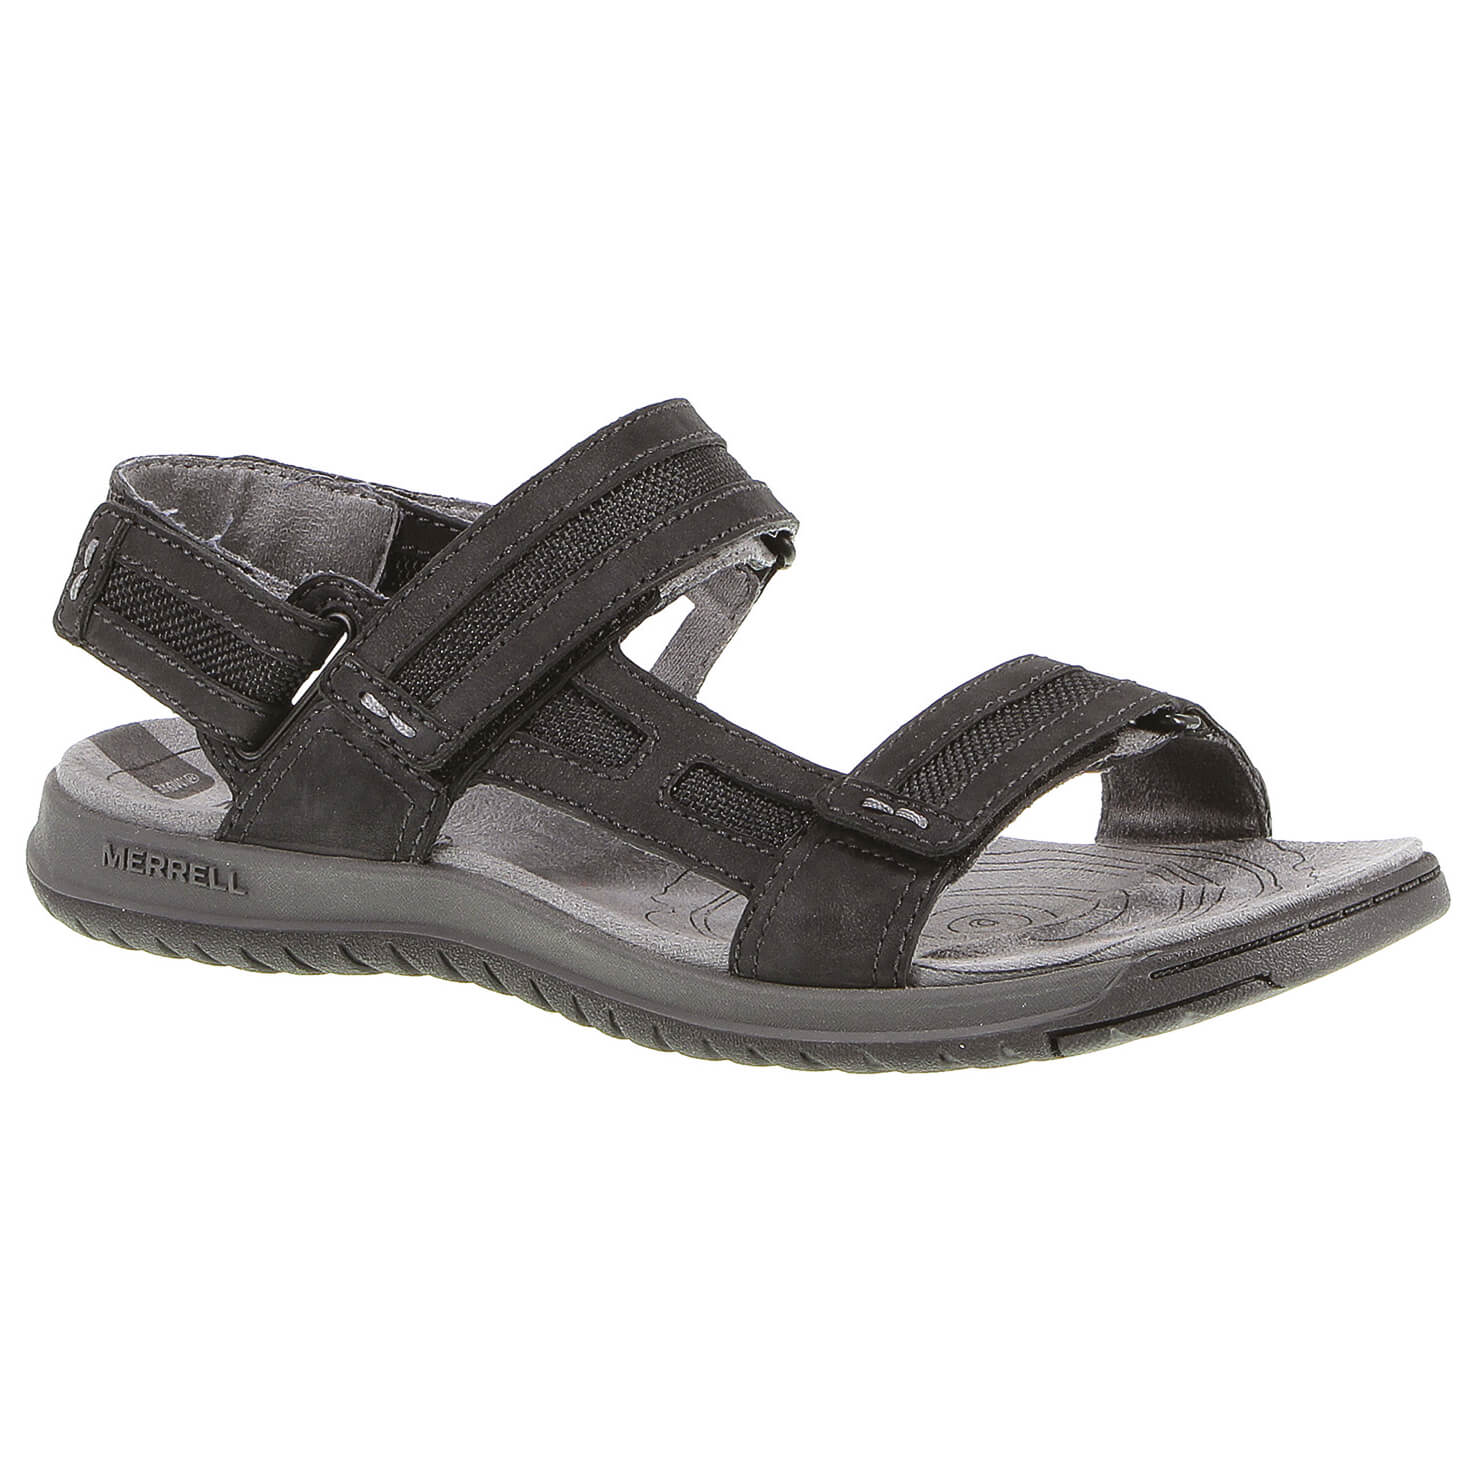 merrell traveler tilt convertible sandalen herren online kaufen. Black Bedroom Furniture Sets. Home Design Ideas